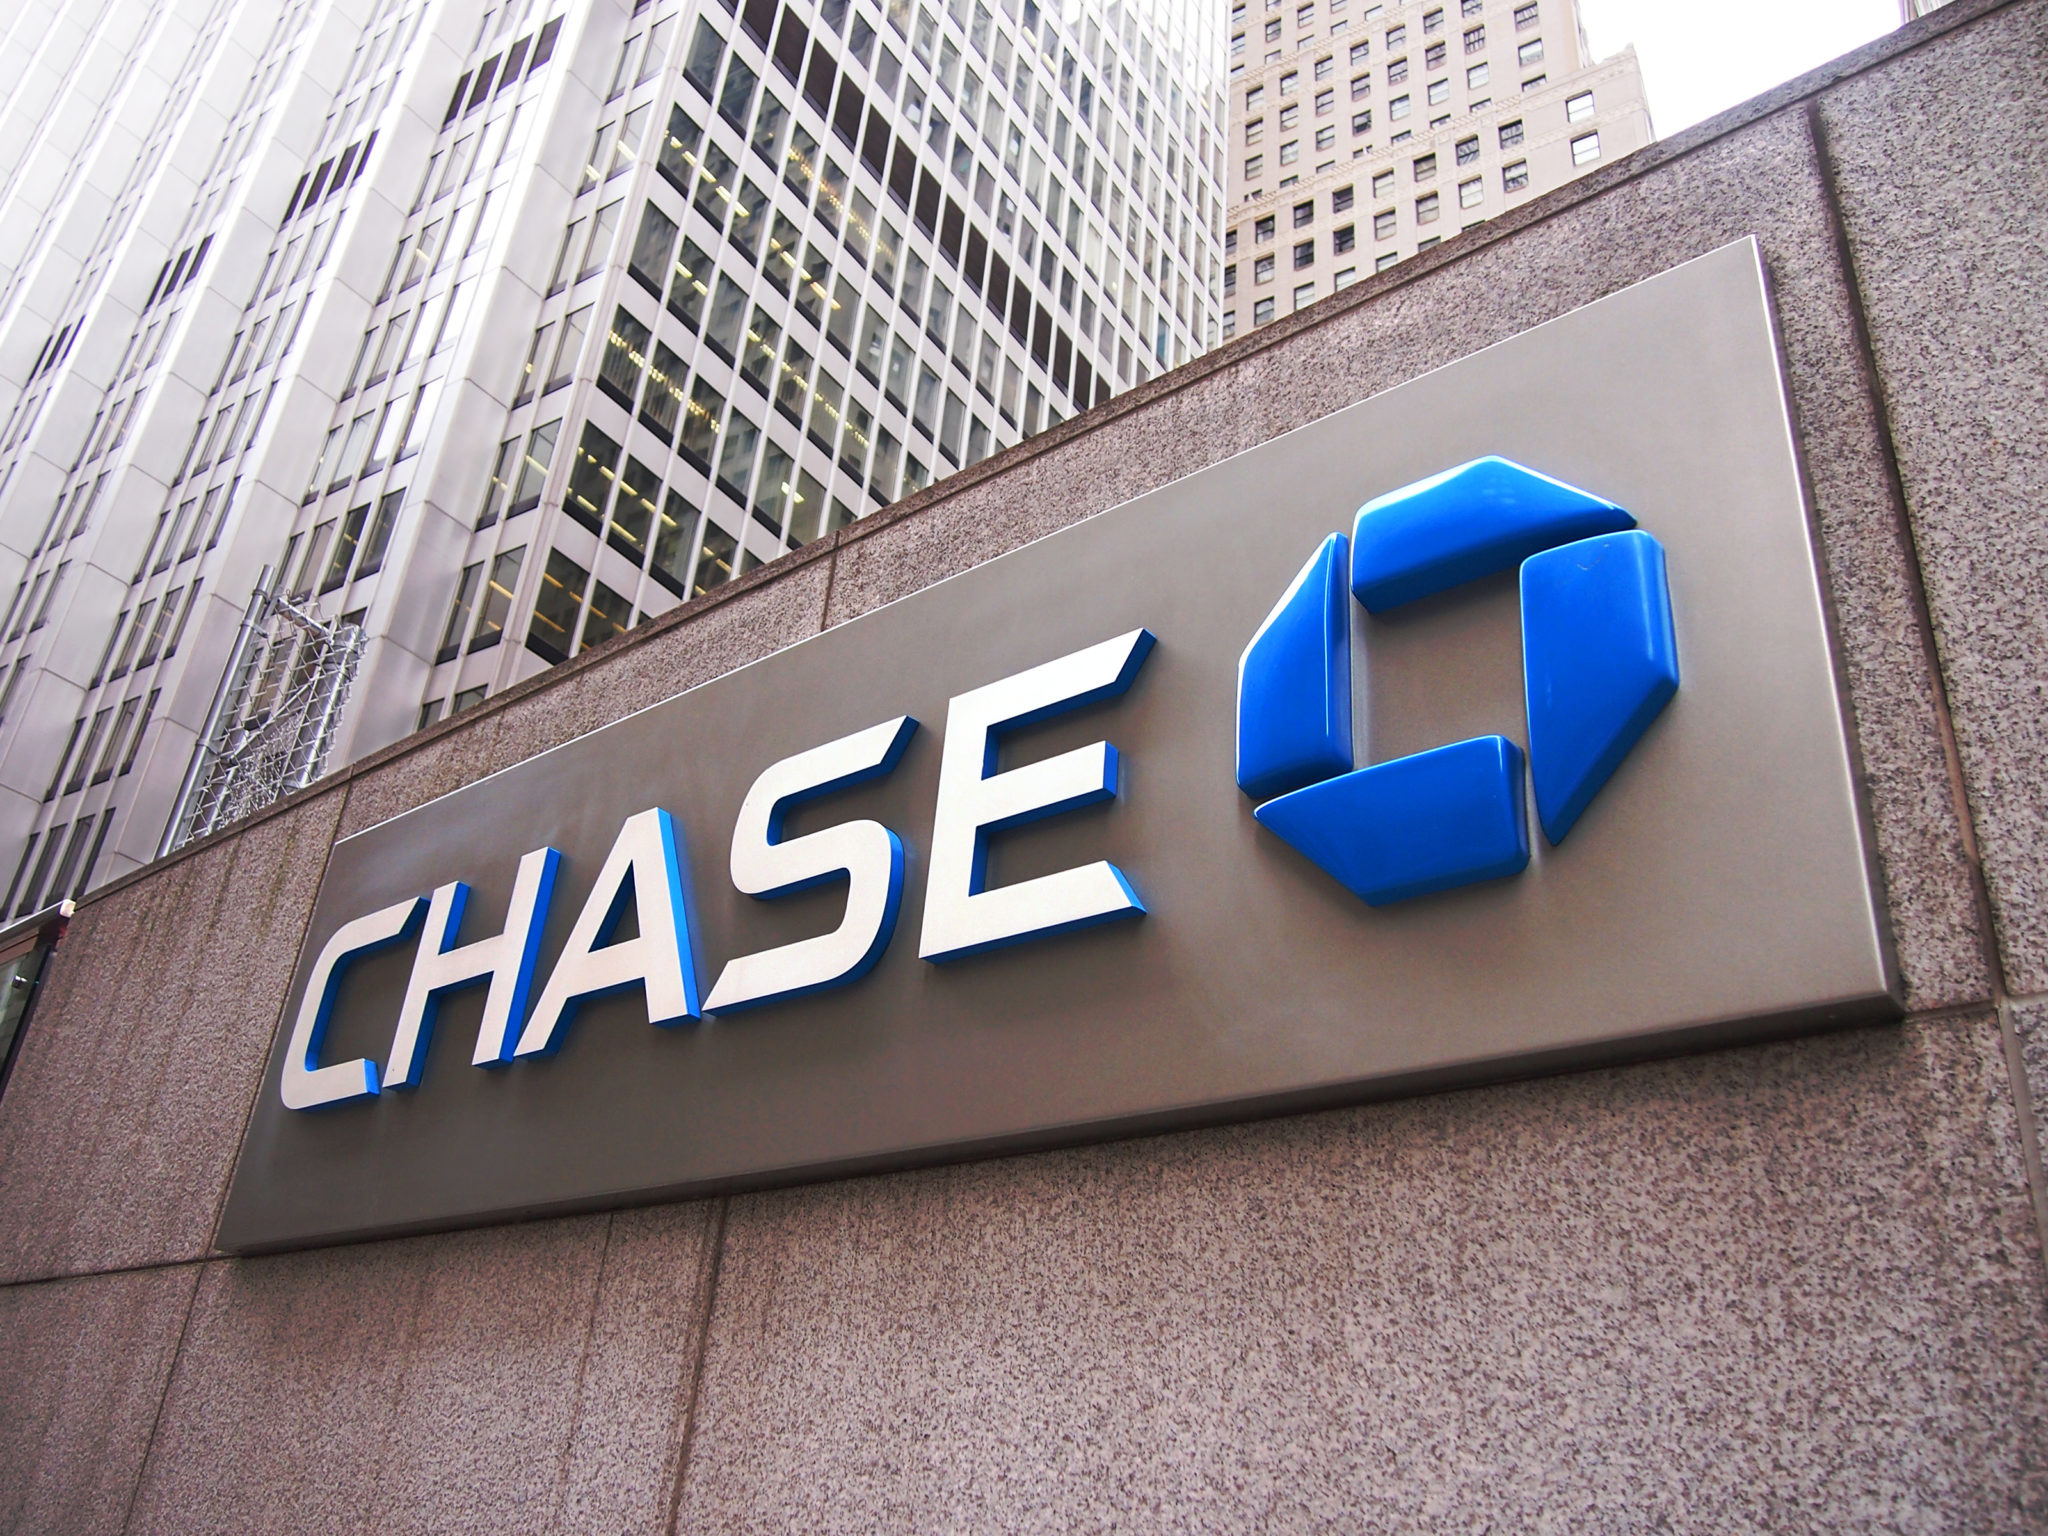 5 Best Chase Business Credit Cards - August 2019 [$1k+ Rewards]